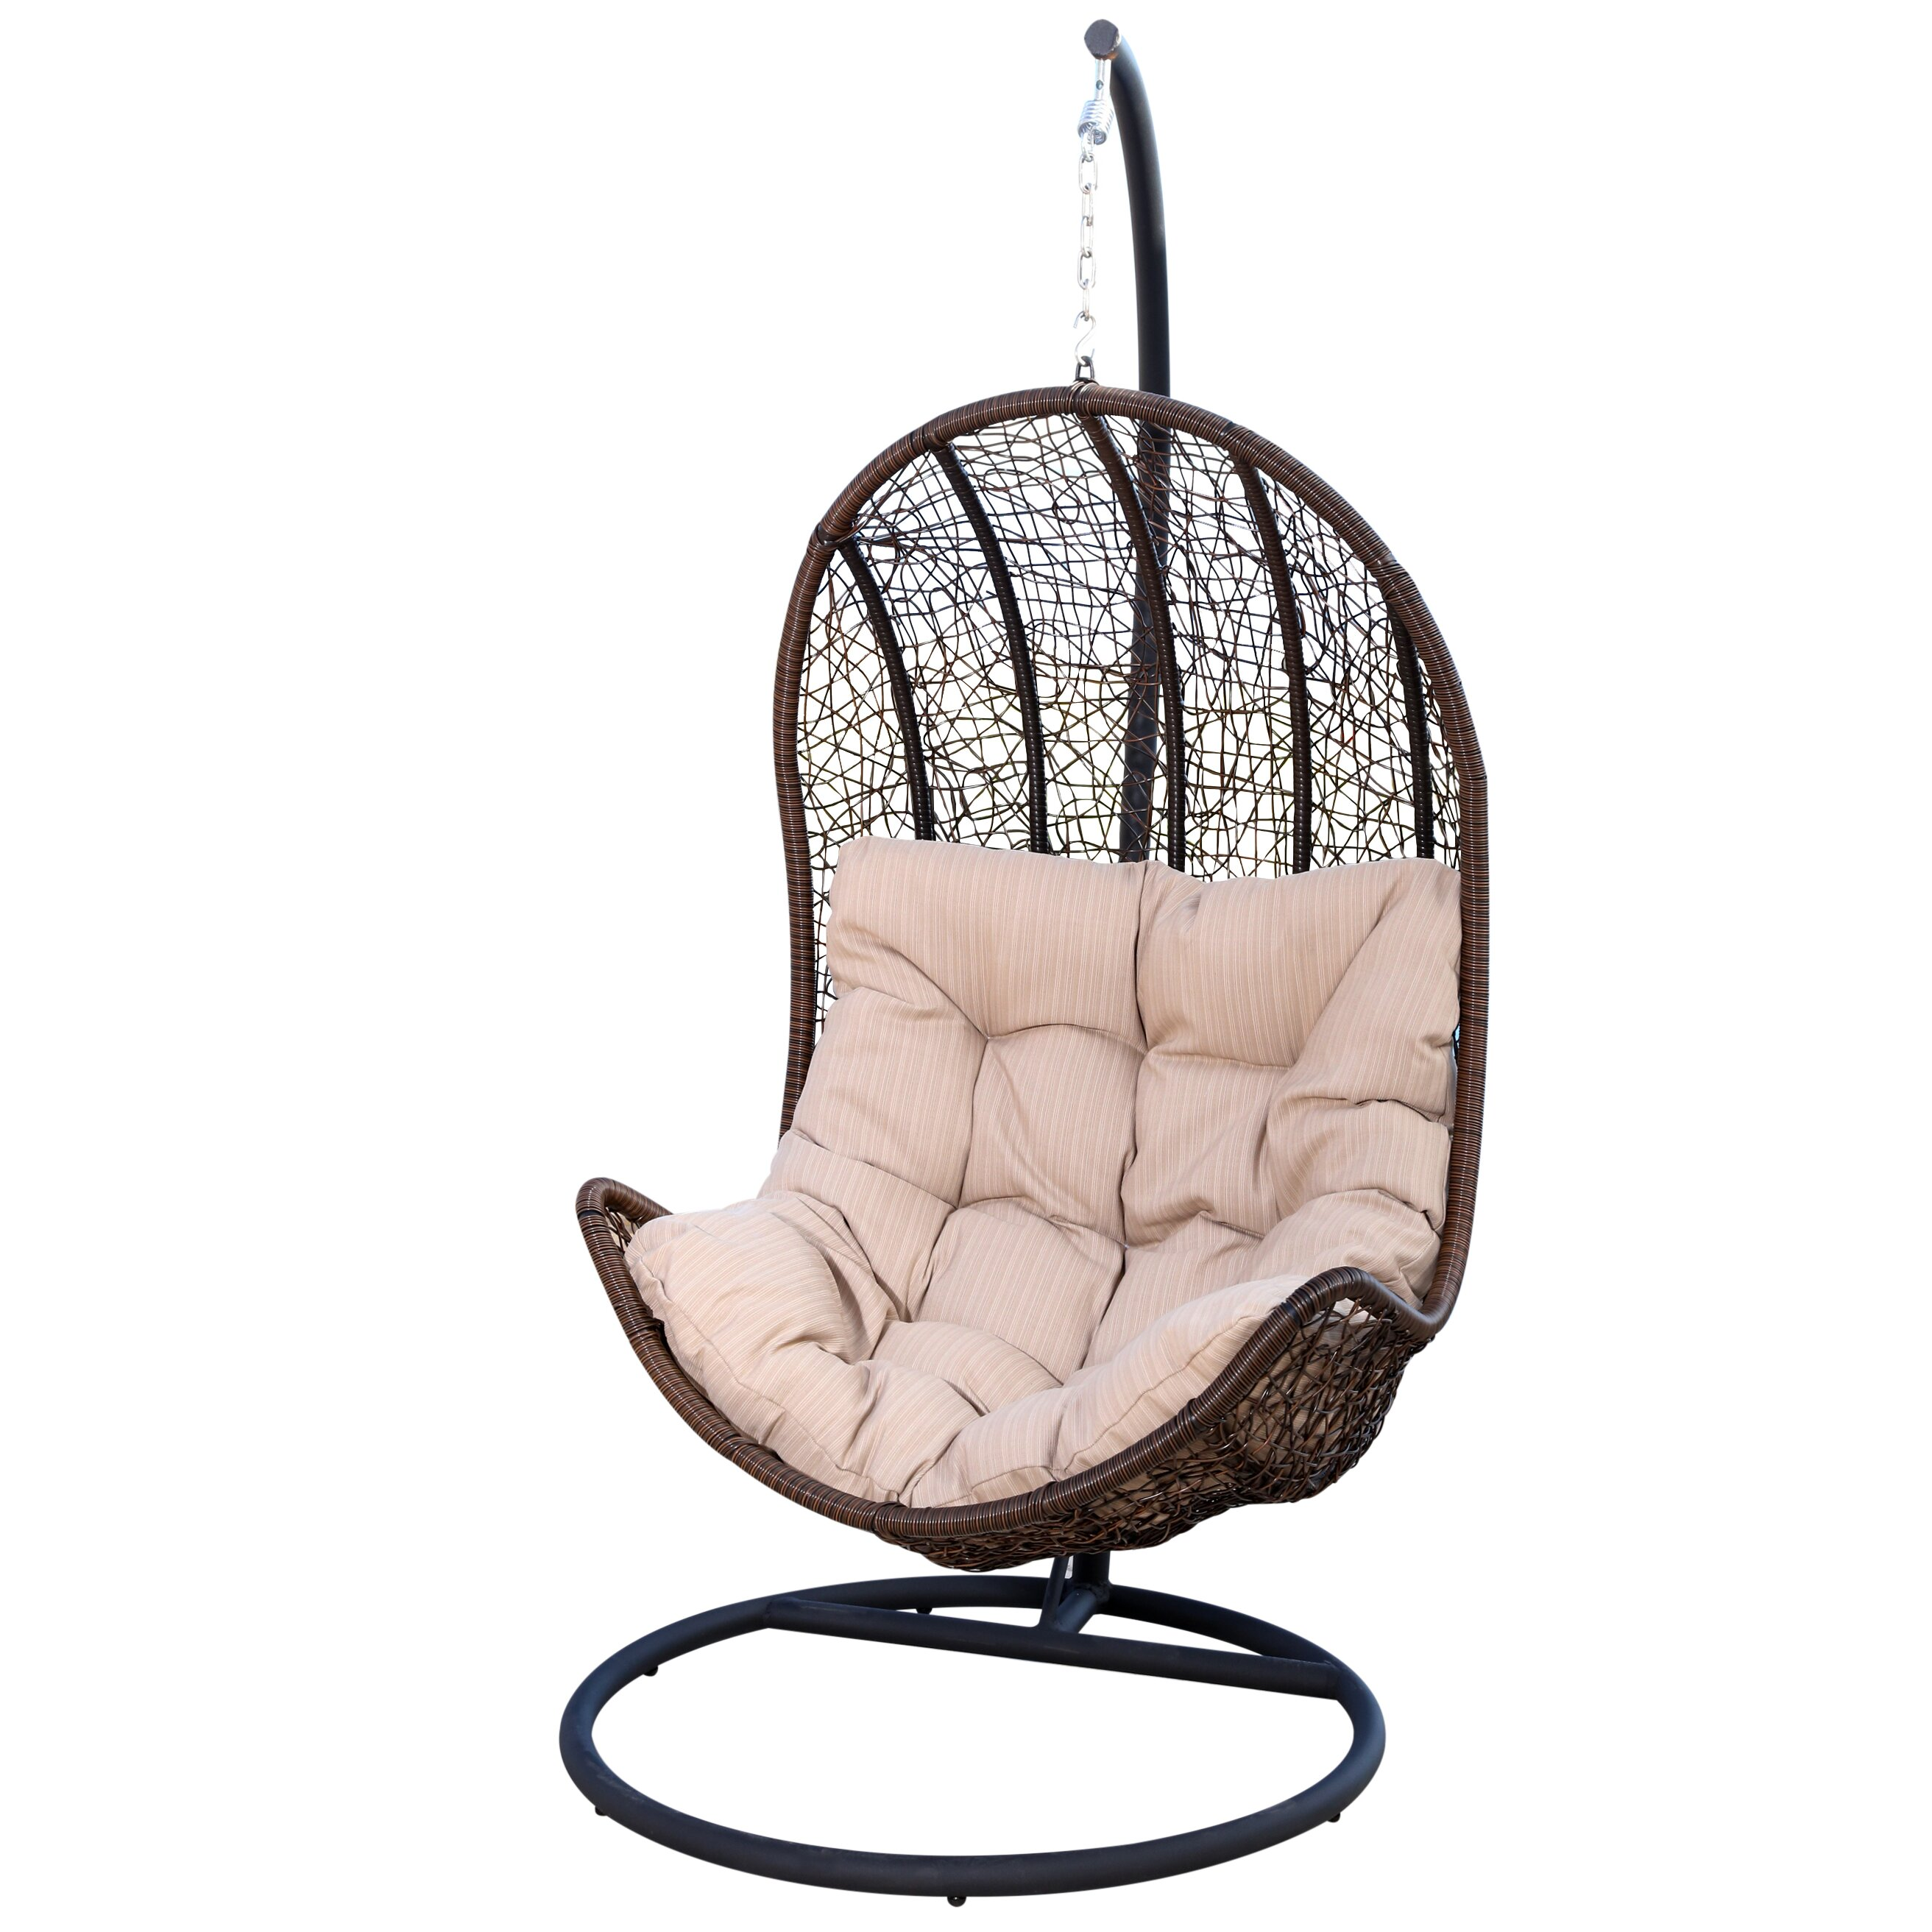 Darby Home Co Everson Eggshaped Swing Chair & Reviews ...